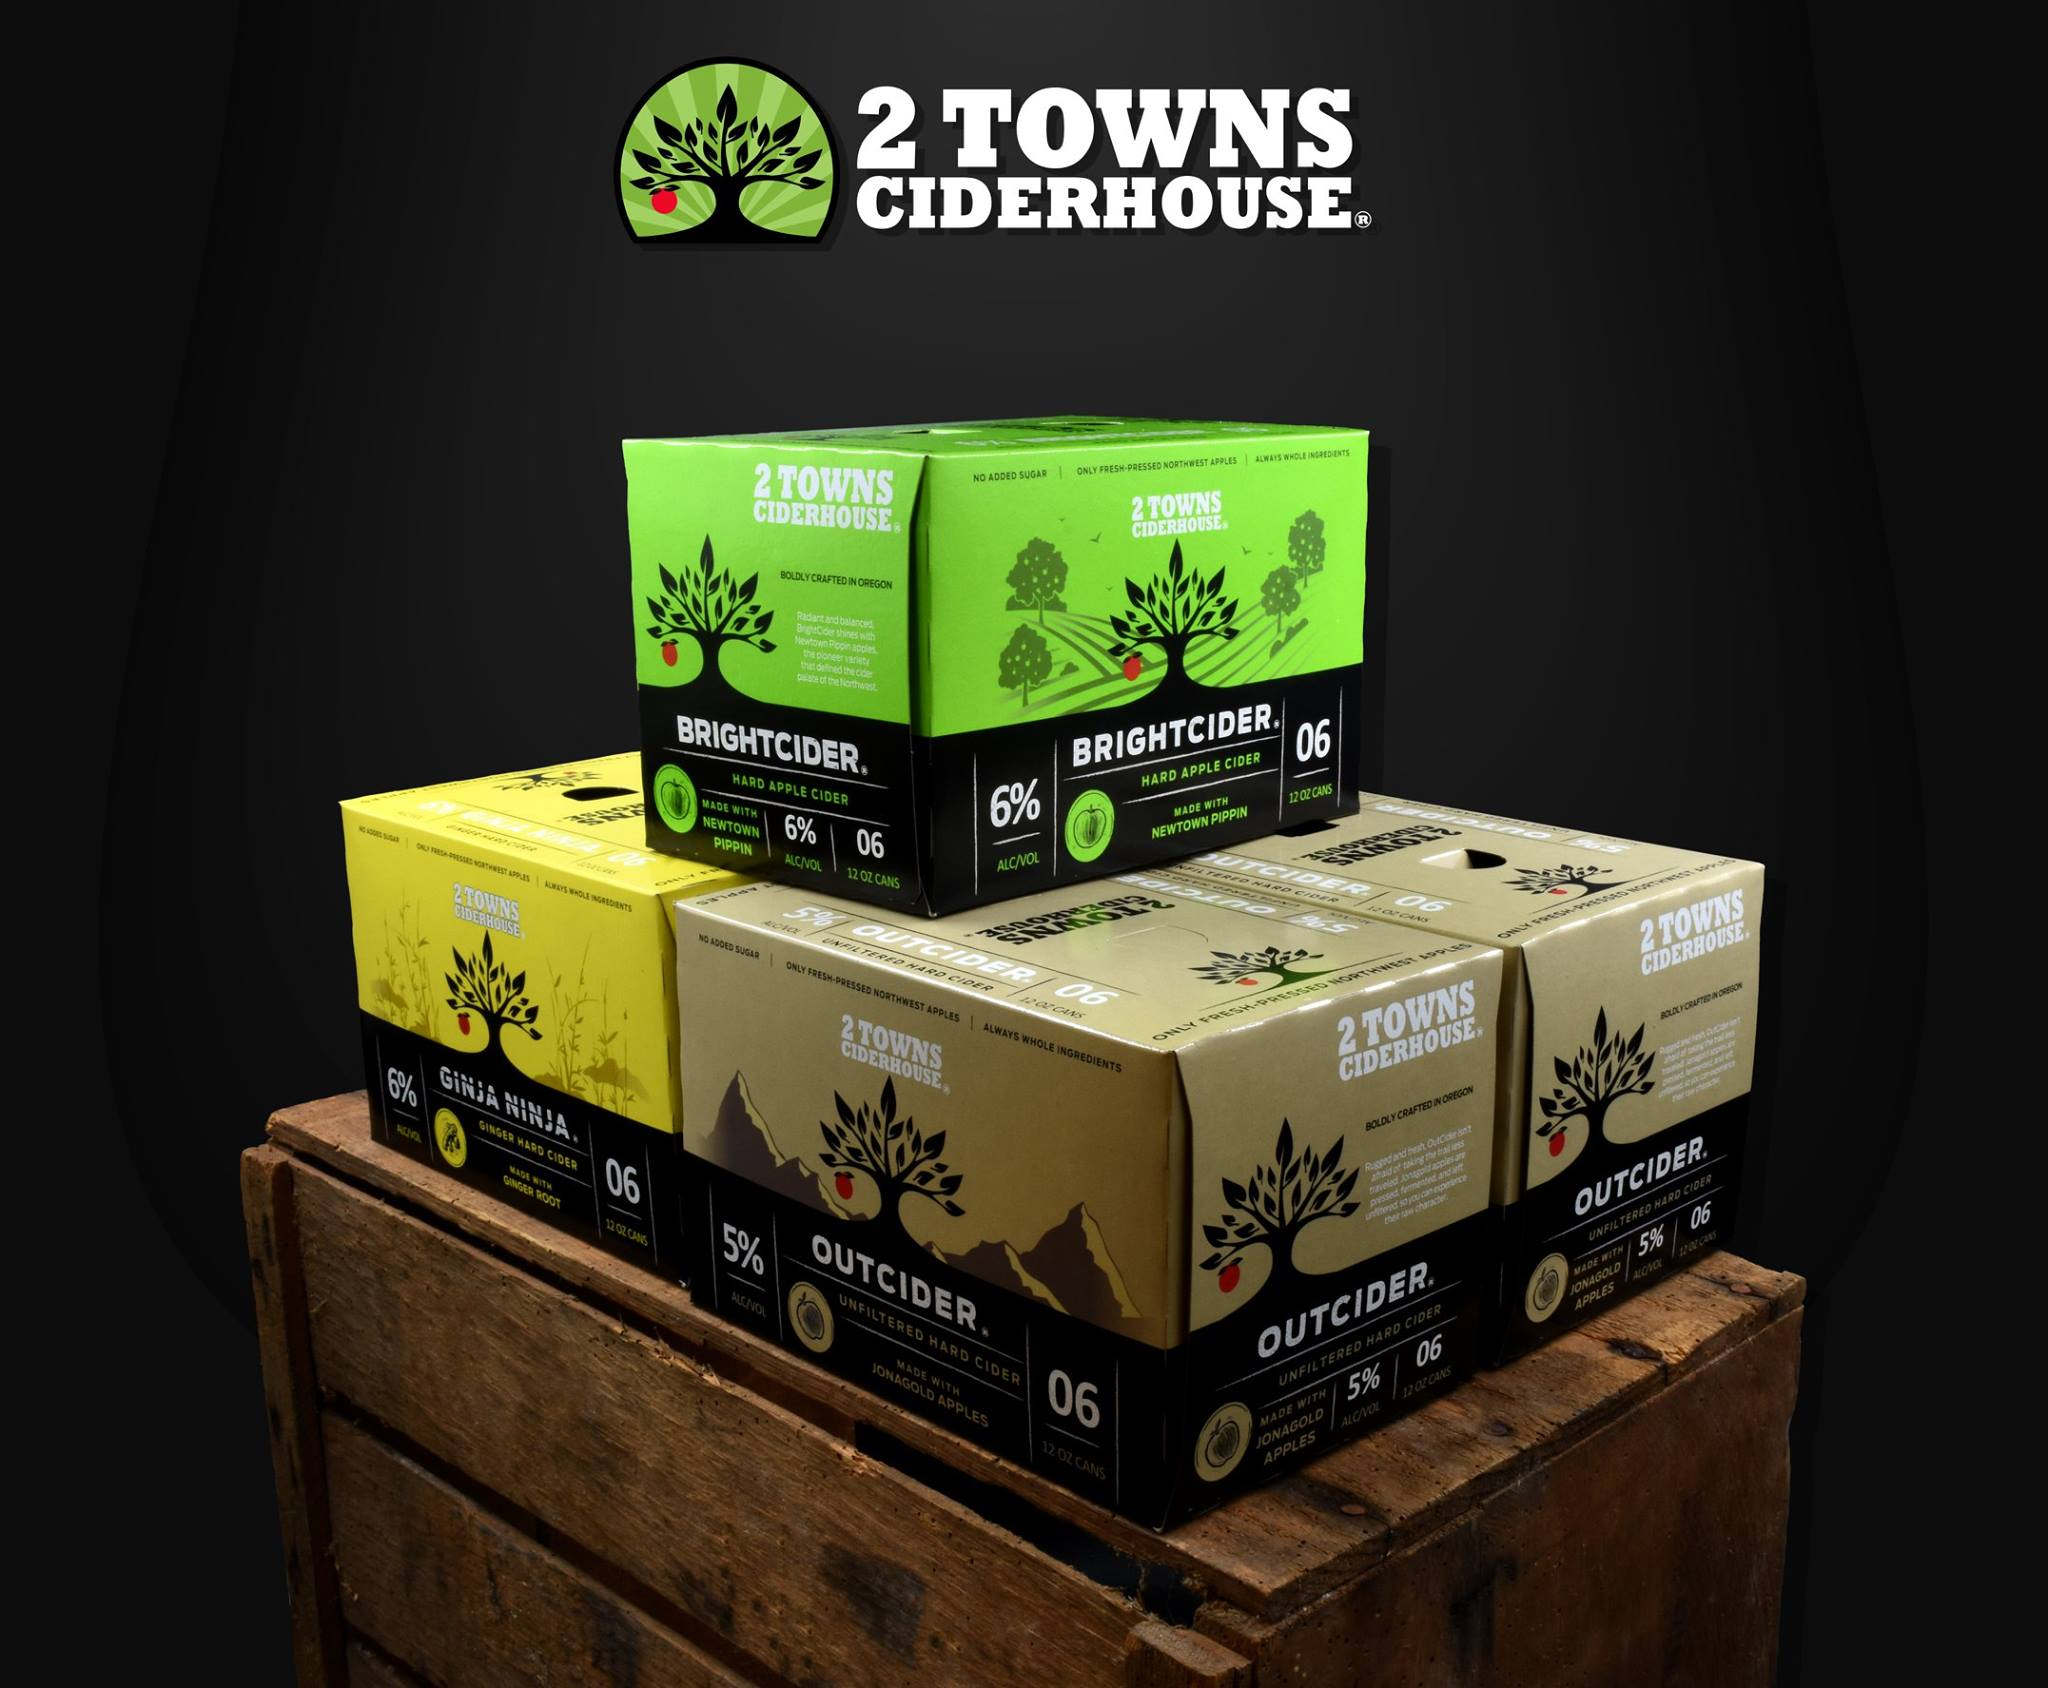 2 Towns Cider 6 Packs (image courtesy of 2 Towns Ciderhouse)